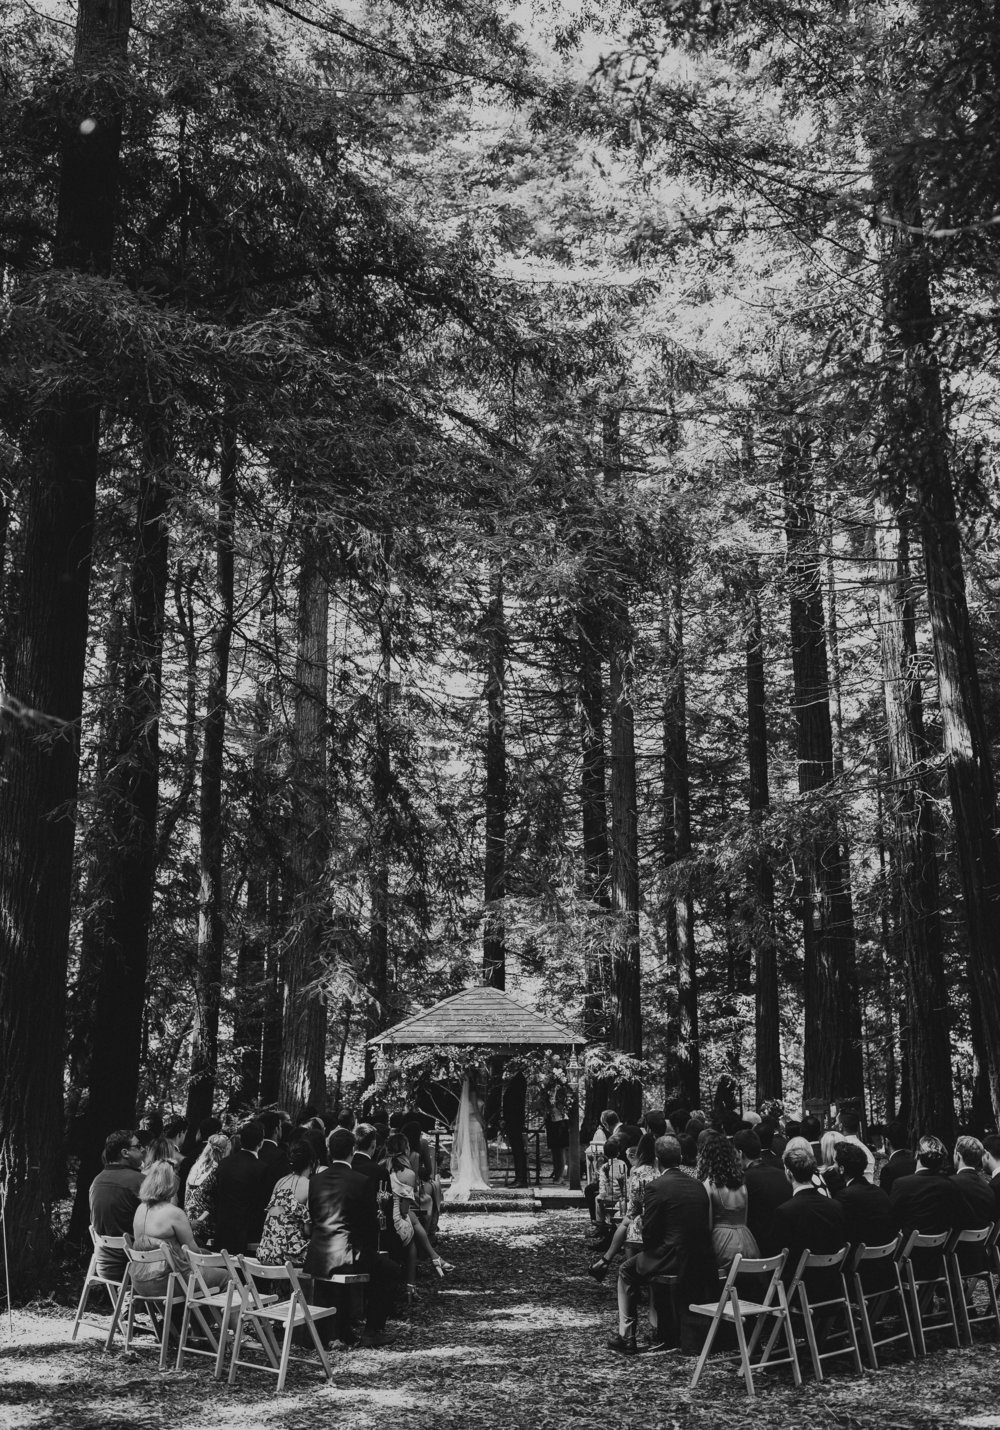 TWO_WOODS_ESTATE_WEDDING_PULBOROUGH_PJ_PHILLIPS_PHOTOGRAPHY_FRAN_&_GEORGE_75.jpg